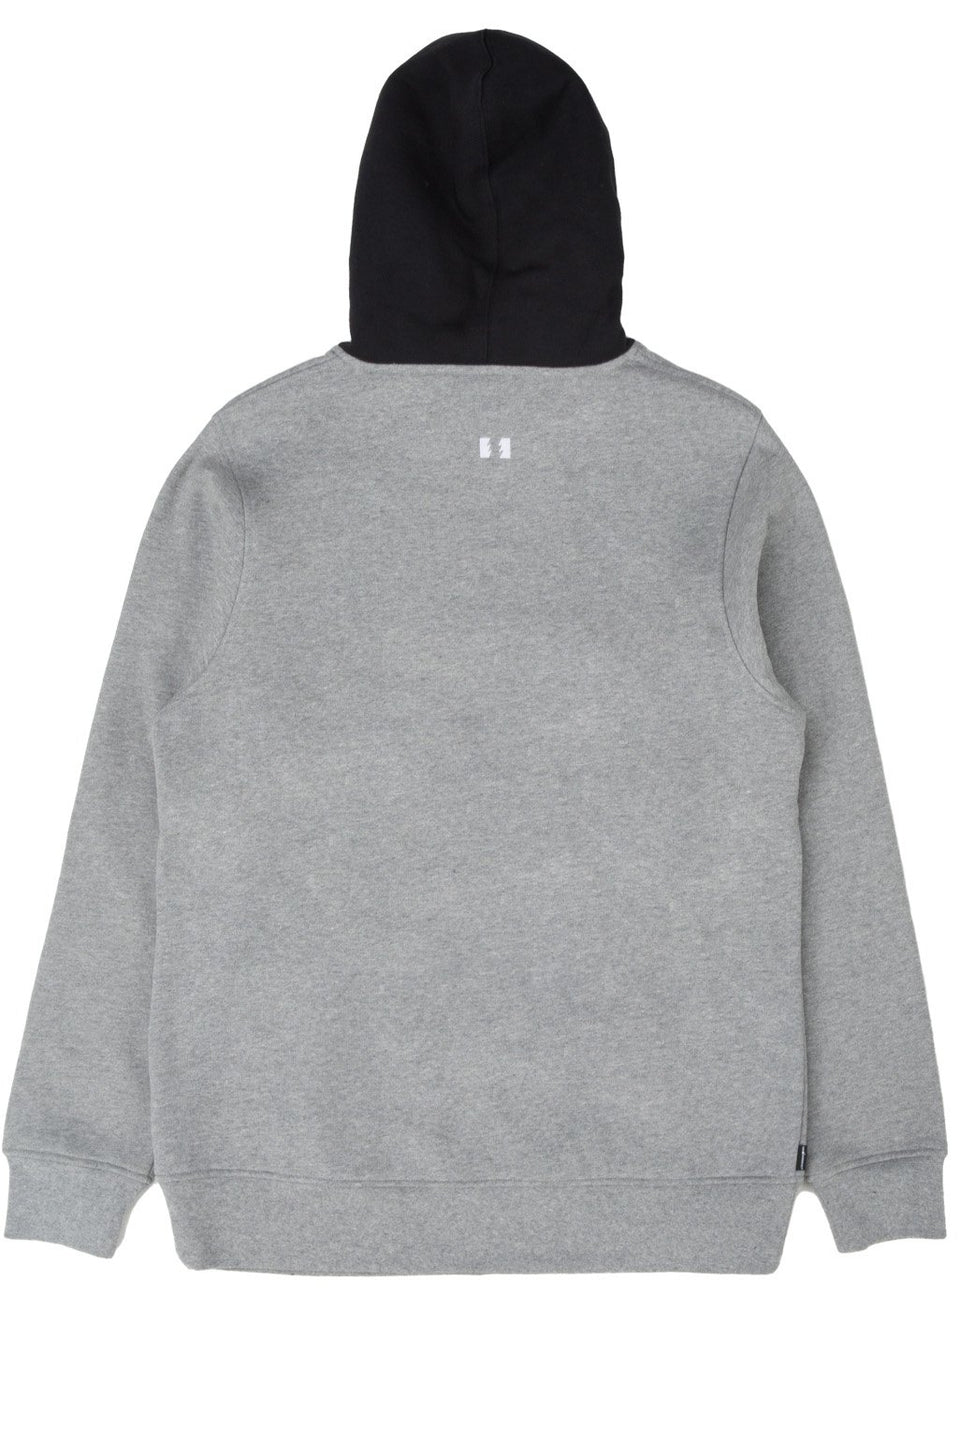 Bower Pullover Hoodie Bower Pullover Hoodie